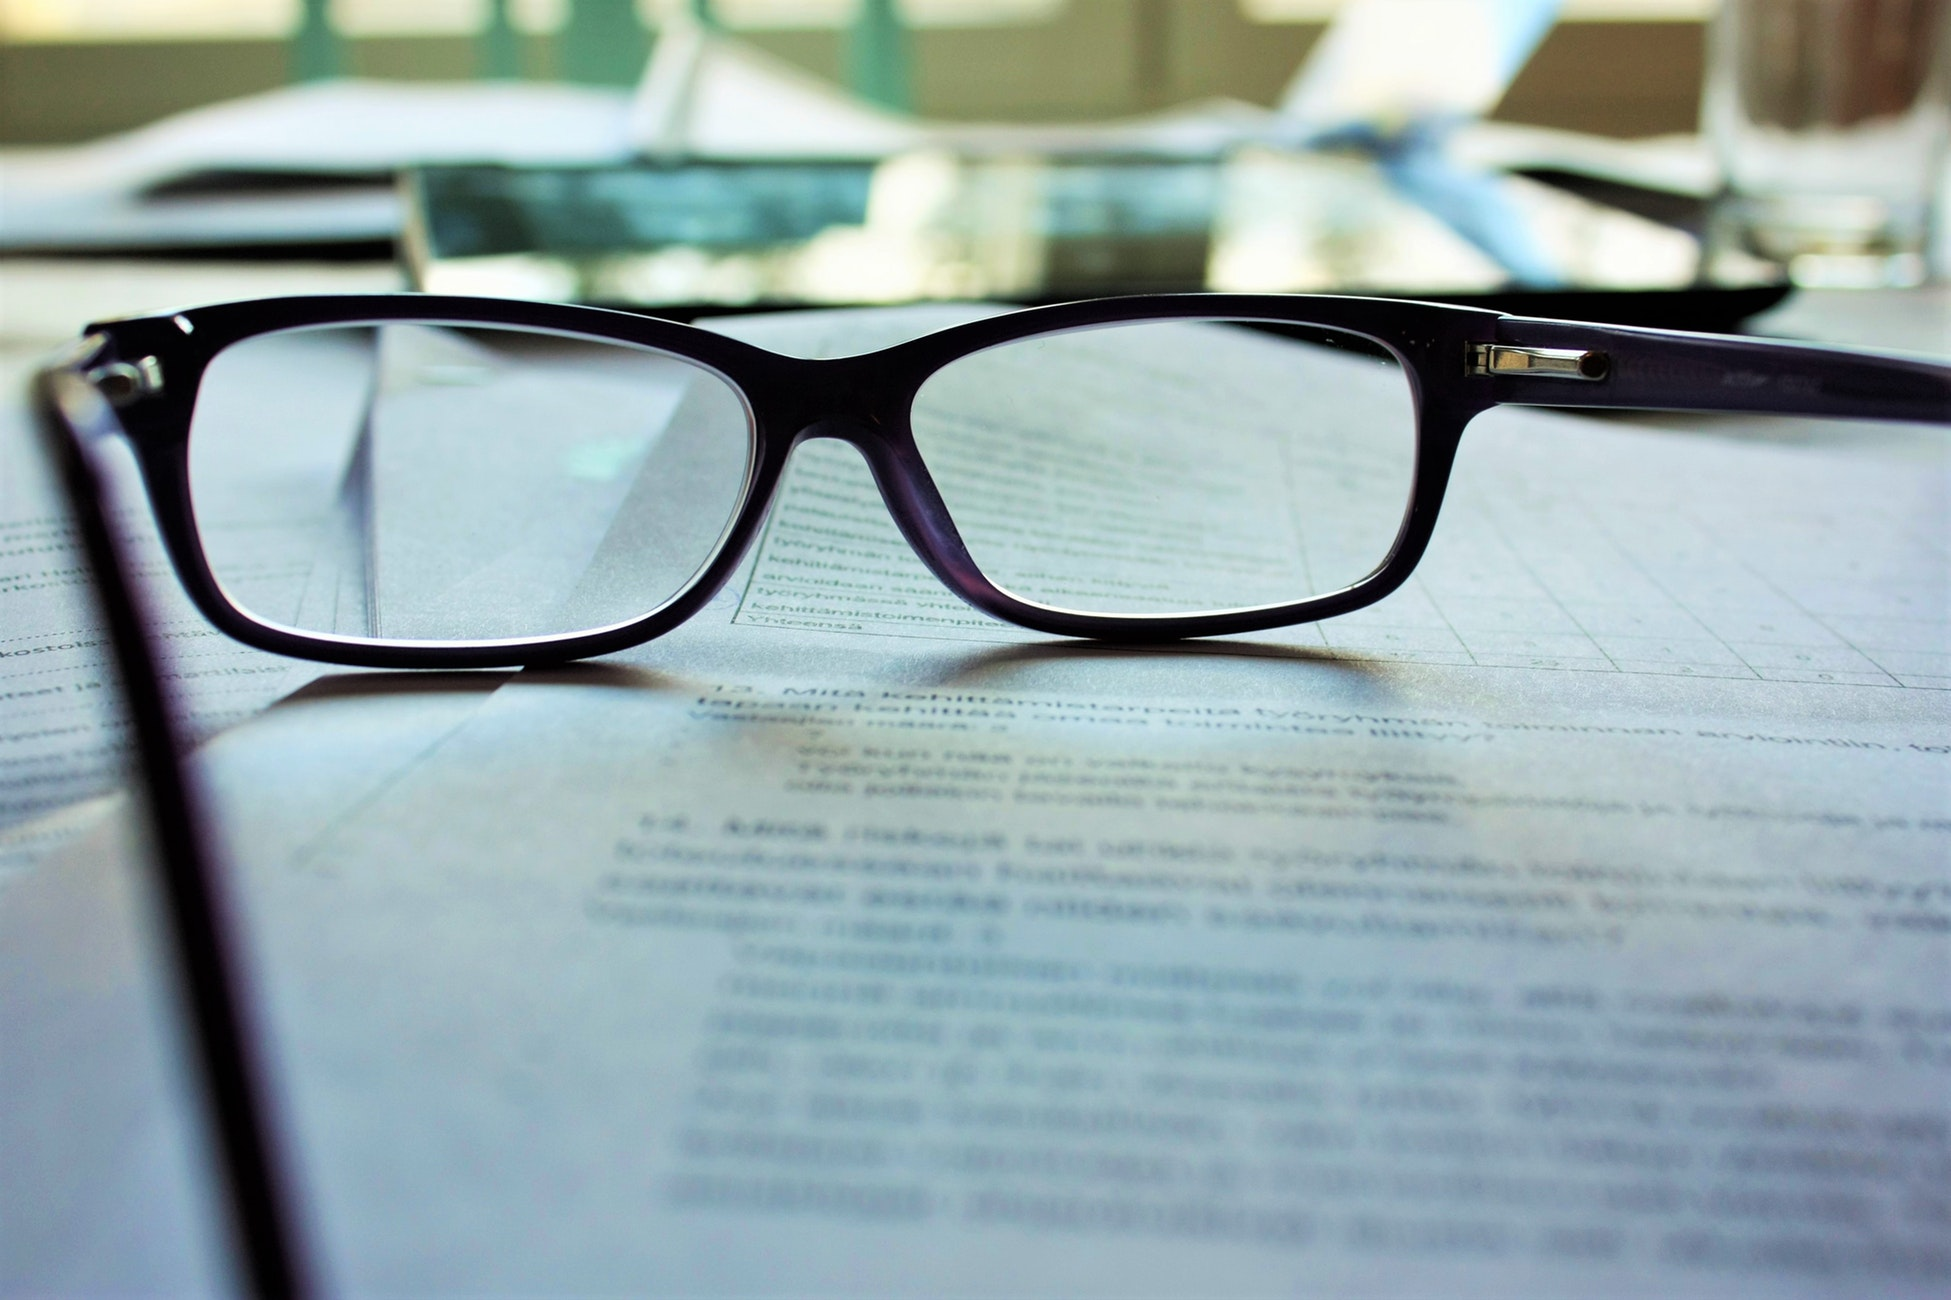 Picture of a pair of black-framed eyeglasses on white printing paper